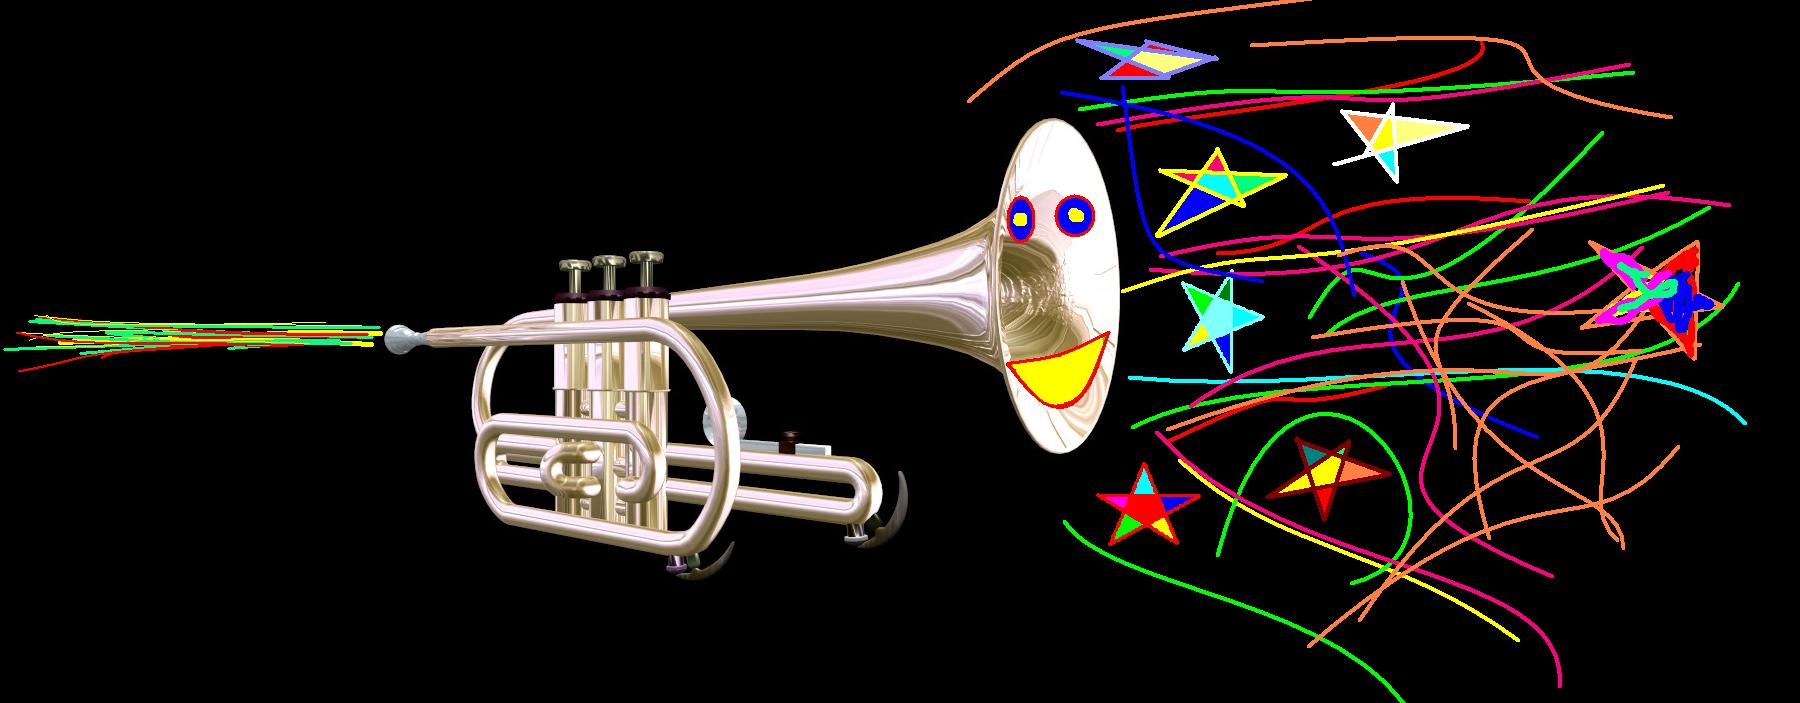 /pages/a-magical-trumpet-called-bill/gallery/3d.jpg